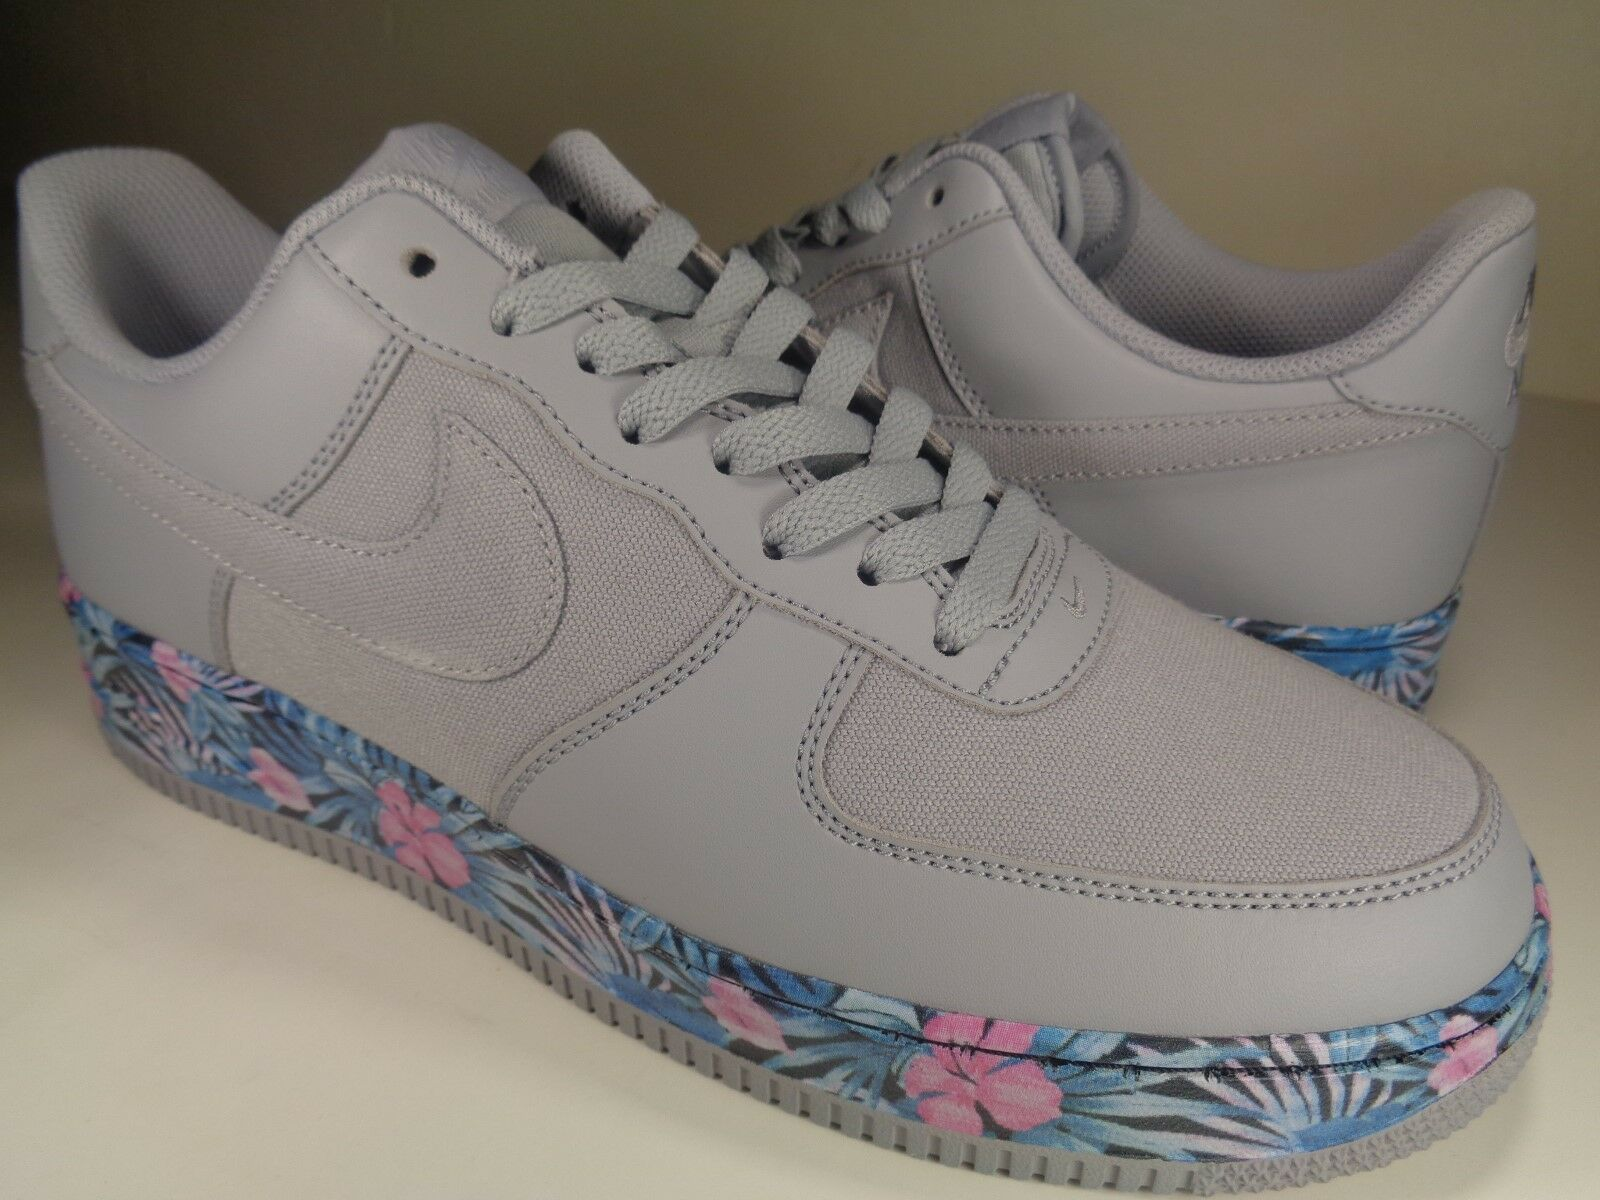 Nike Air Force 1 Low Low Low Aloha Flowers Grey Blue Extremely Rare SZ 9 (820266-005) 6c373c